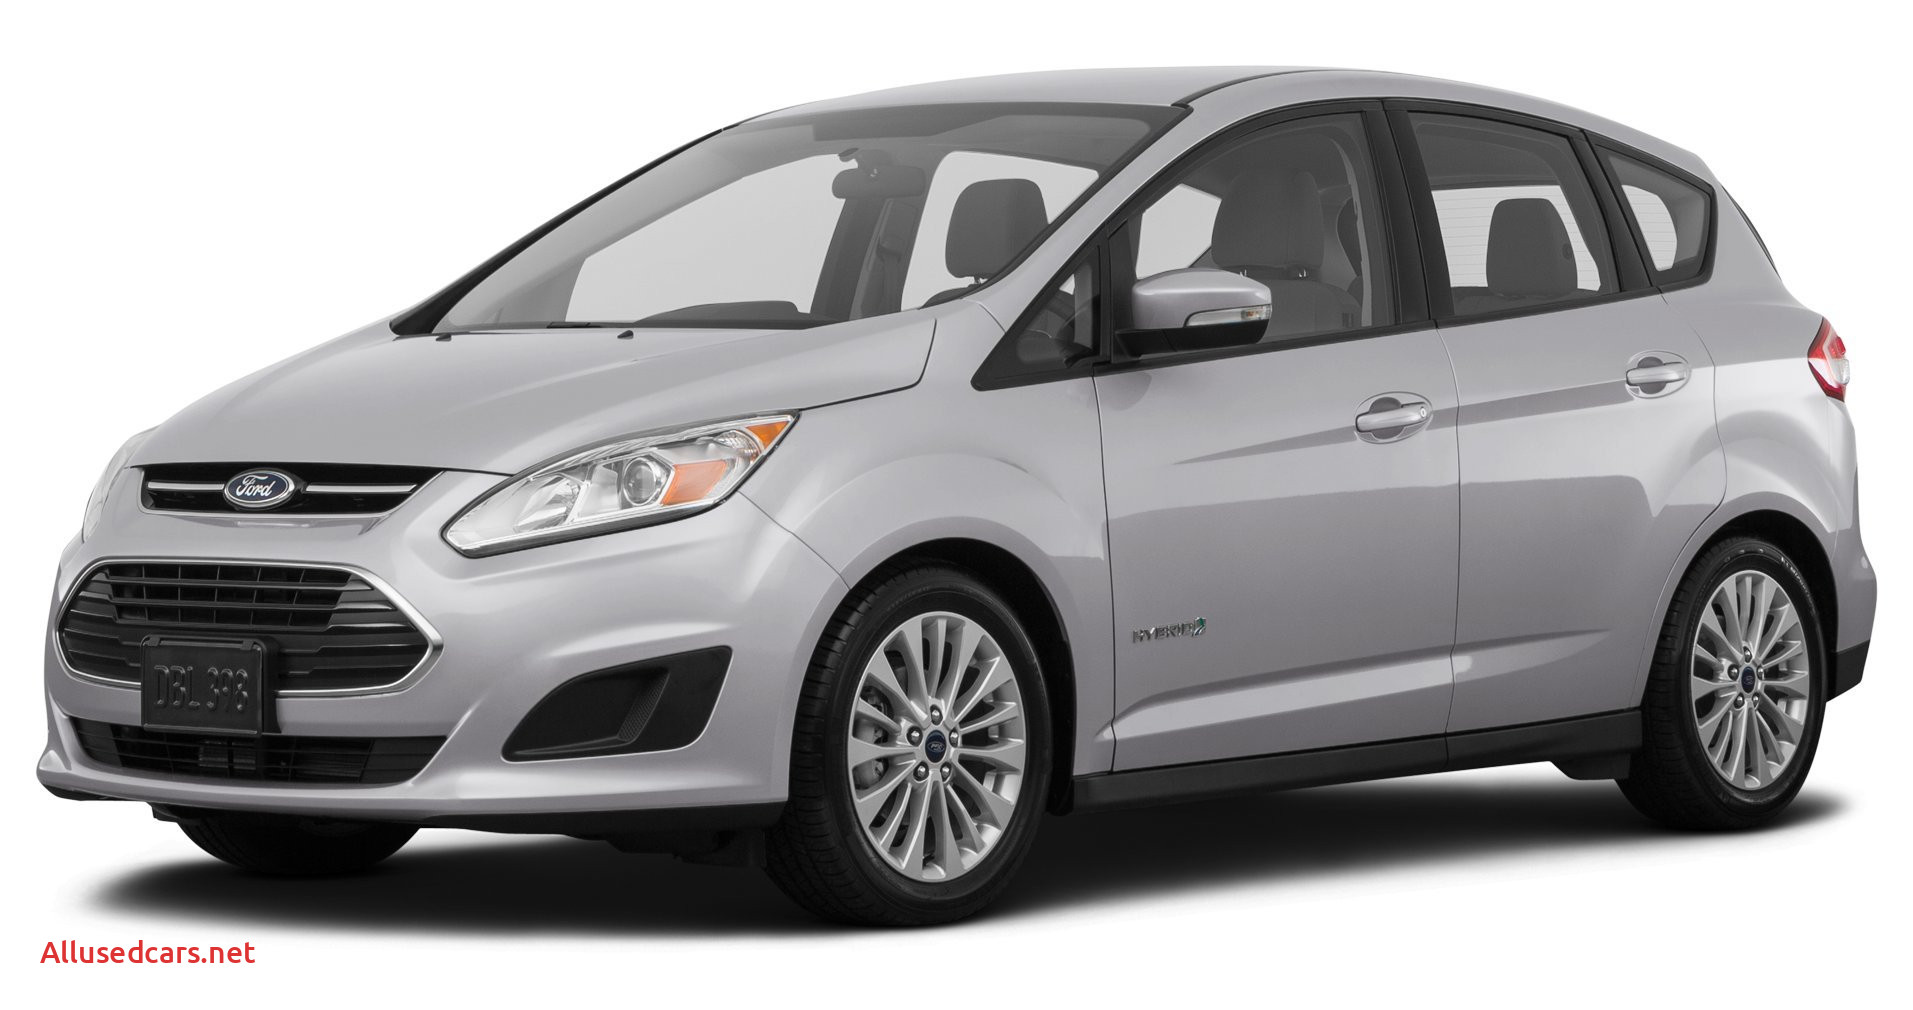 Ford C-max Energi Plug-in Hybrid New Amazon 2017 ford C Max Reviews and Specs Vehicles